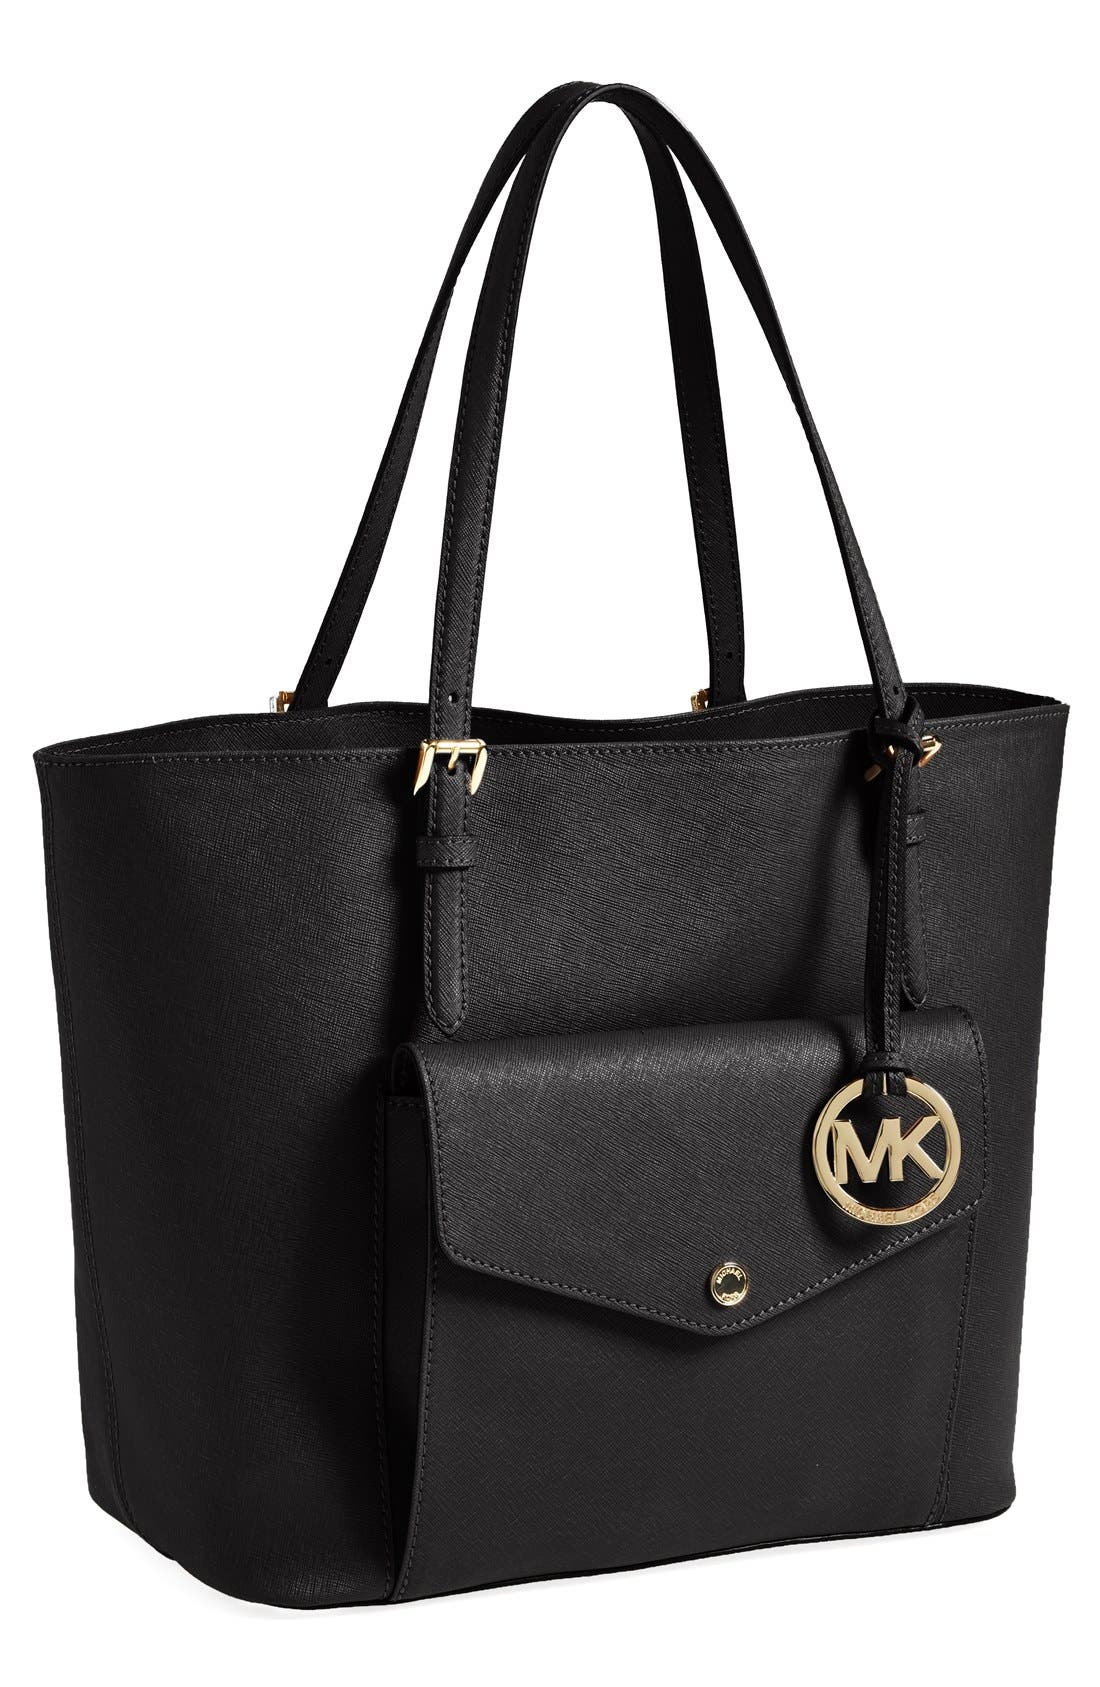 Alternate Image 1 Selected - MICHAEL Michael Kors 'Large Jet Set' Multifunction Travel Tote (Nordstrom Exclusive)